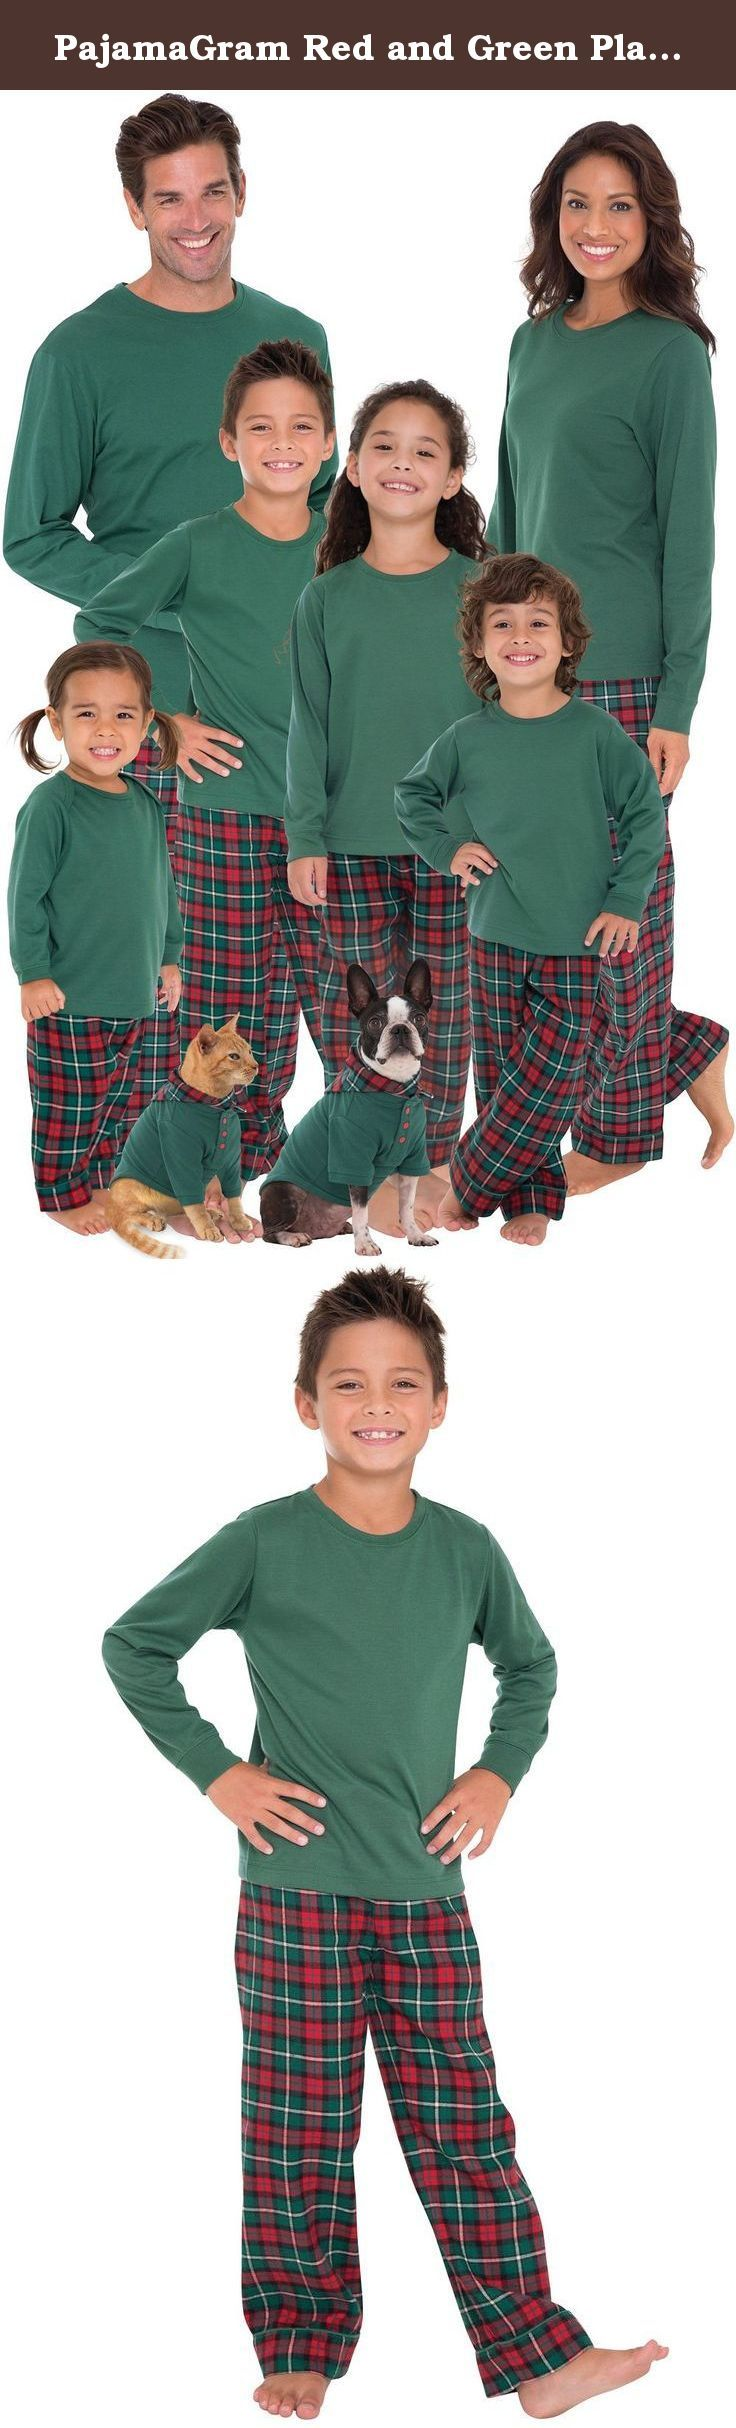 PajamaGram Red and Green Plaid Matching Family Christmas Pajamas Green Women 's Large / 12-14. Gear up for a Christmas they'll remember forever with the PajamaGram Red & Green Plaid Matching Family Christmas Pajamas. Every member of the family will get into the holiday spirit with a set of fun and festive plaid pajamas featuring red and green plaid pants and a long-sleeved evergreen crew neck top. These pajamas are made for long-lasting quality so you can sport them year after year. Each...